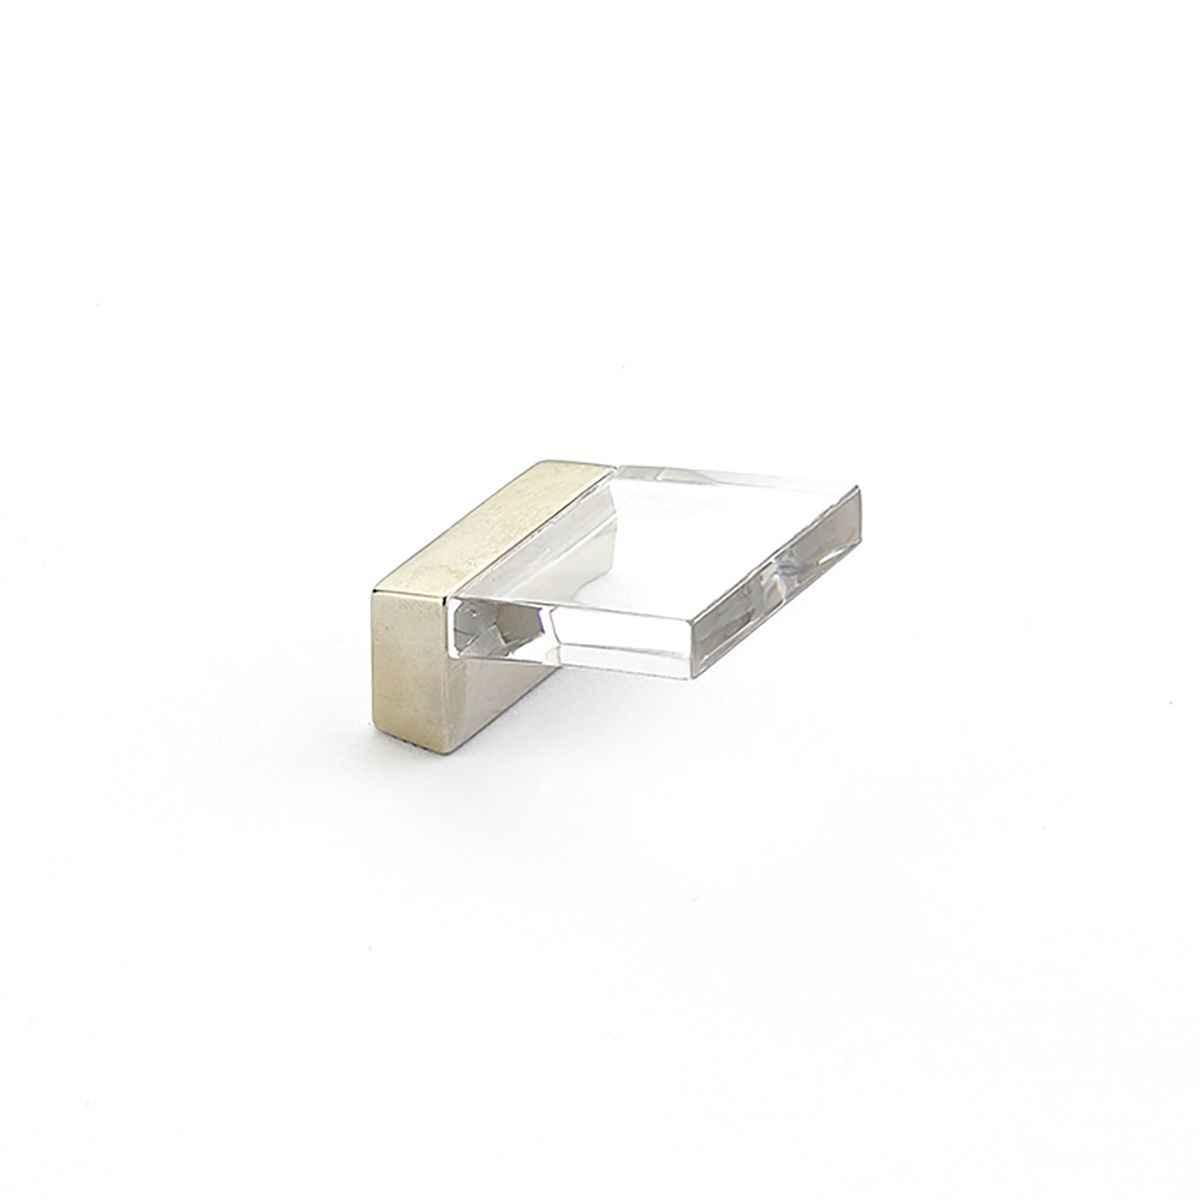 Schaub And Company 319 Positano Inch Center To Center Finger Cabinet Pull  Satin Nickel / Clear Cabinet Hardware Pulls Finger